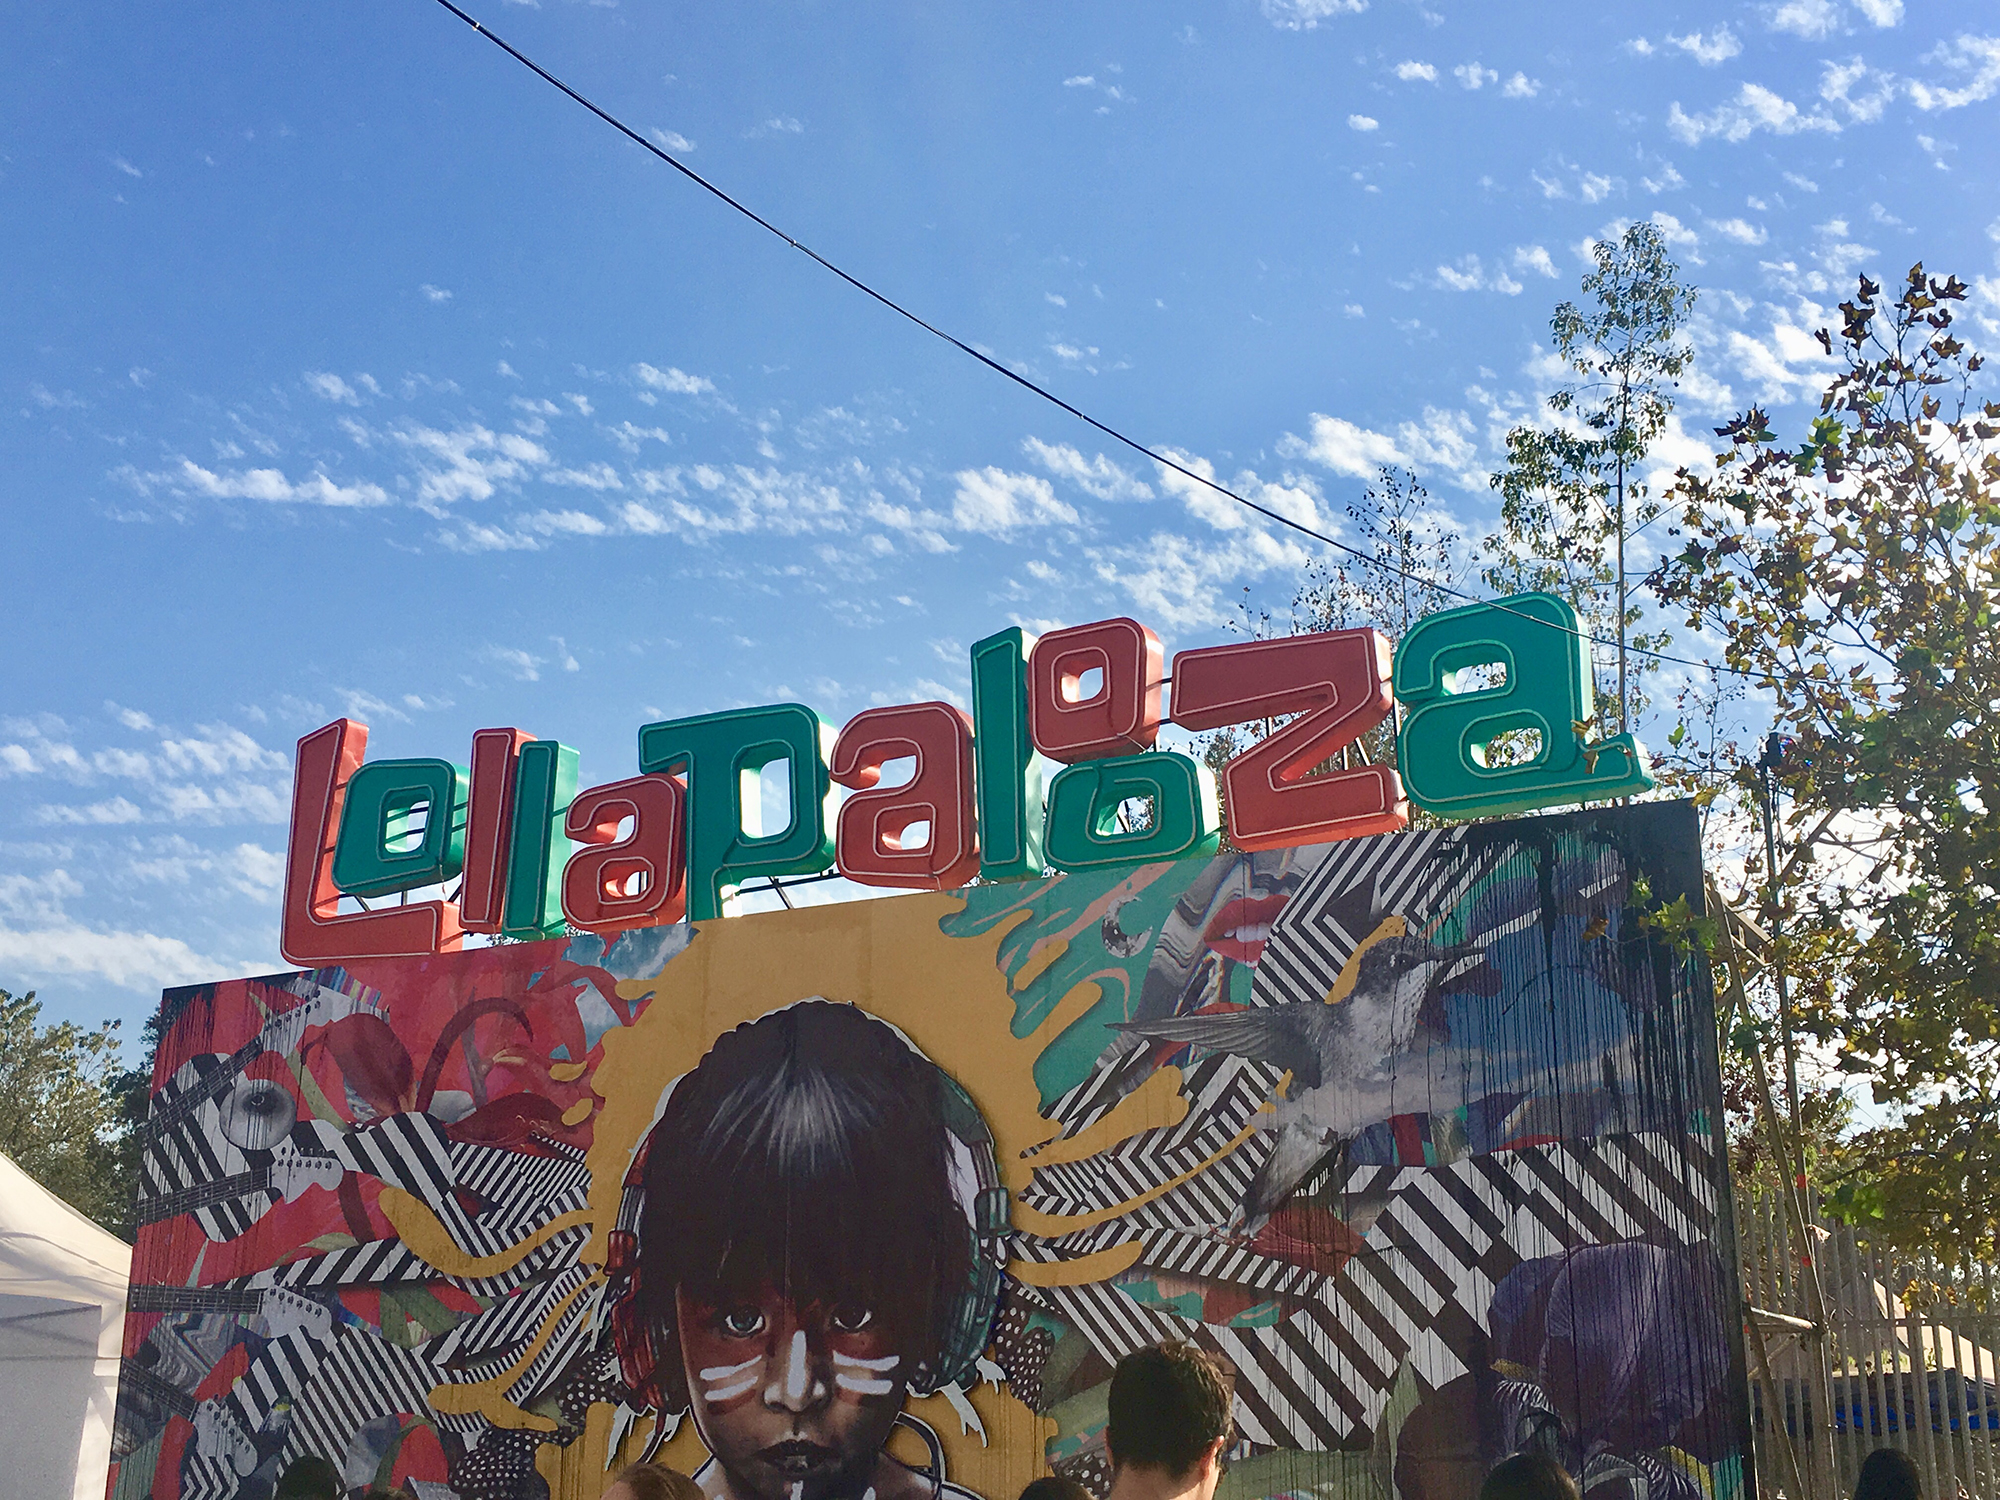 the Lollapalooza sign